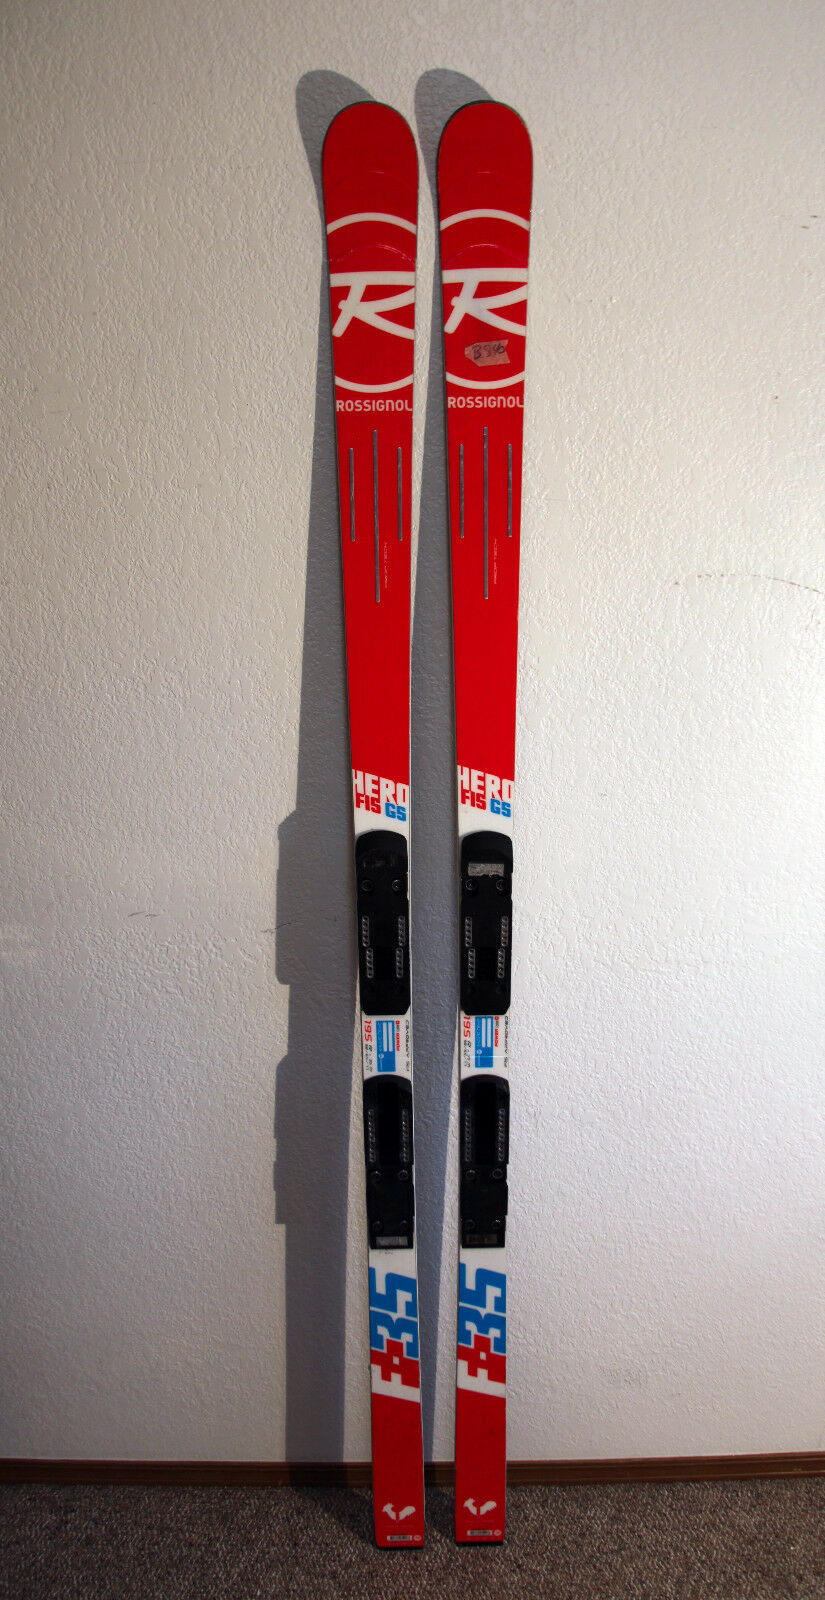 2018 Rosignol Hero F-35 FIS GS Downhill Race Skis 195 cm. with Race Plates